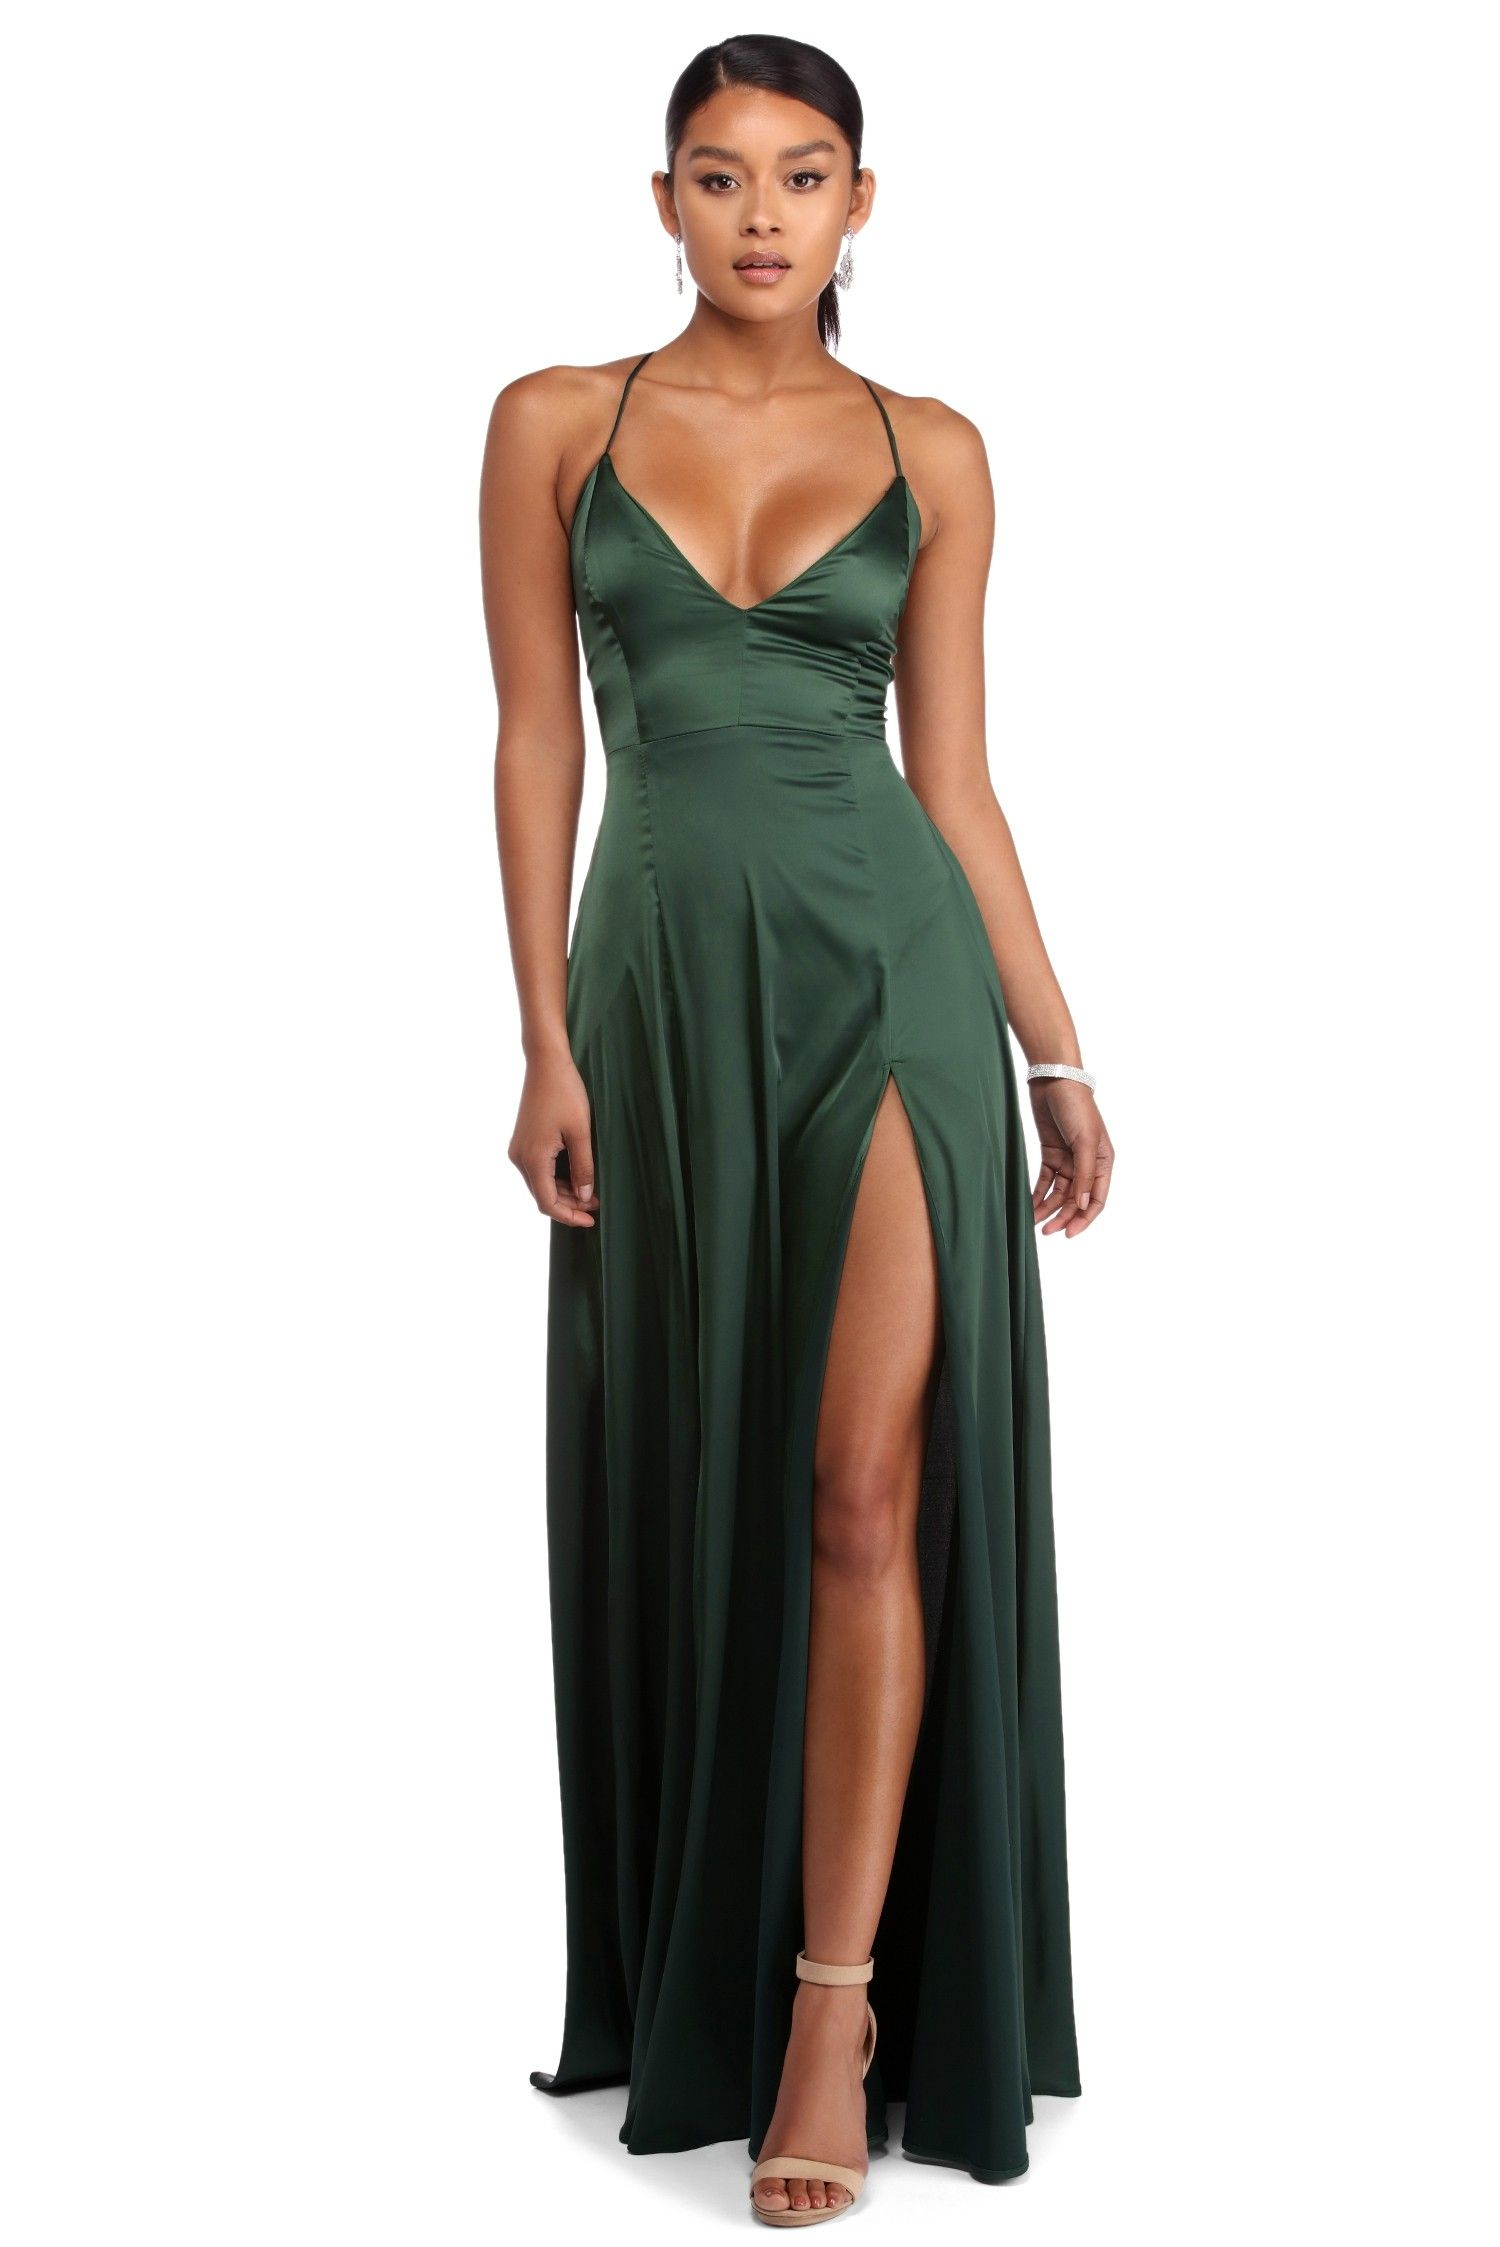 c022b13e217 Vera Emerald Satin Lace Up Formal Dress | promsicle in 2019 | Formal ...